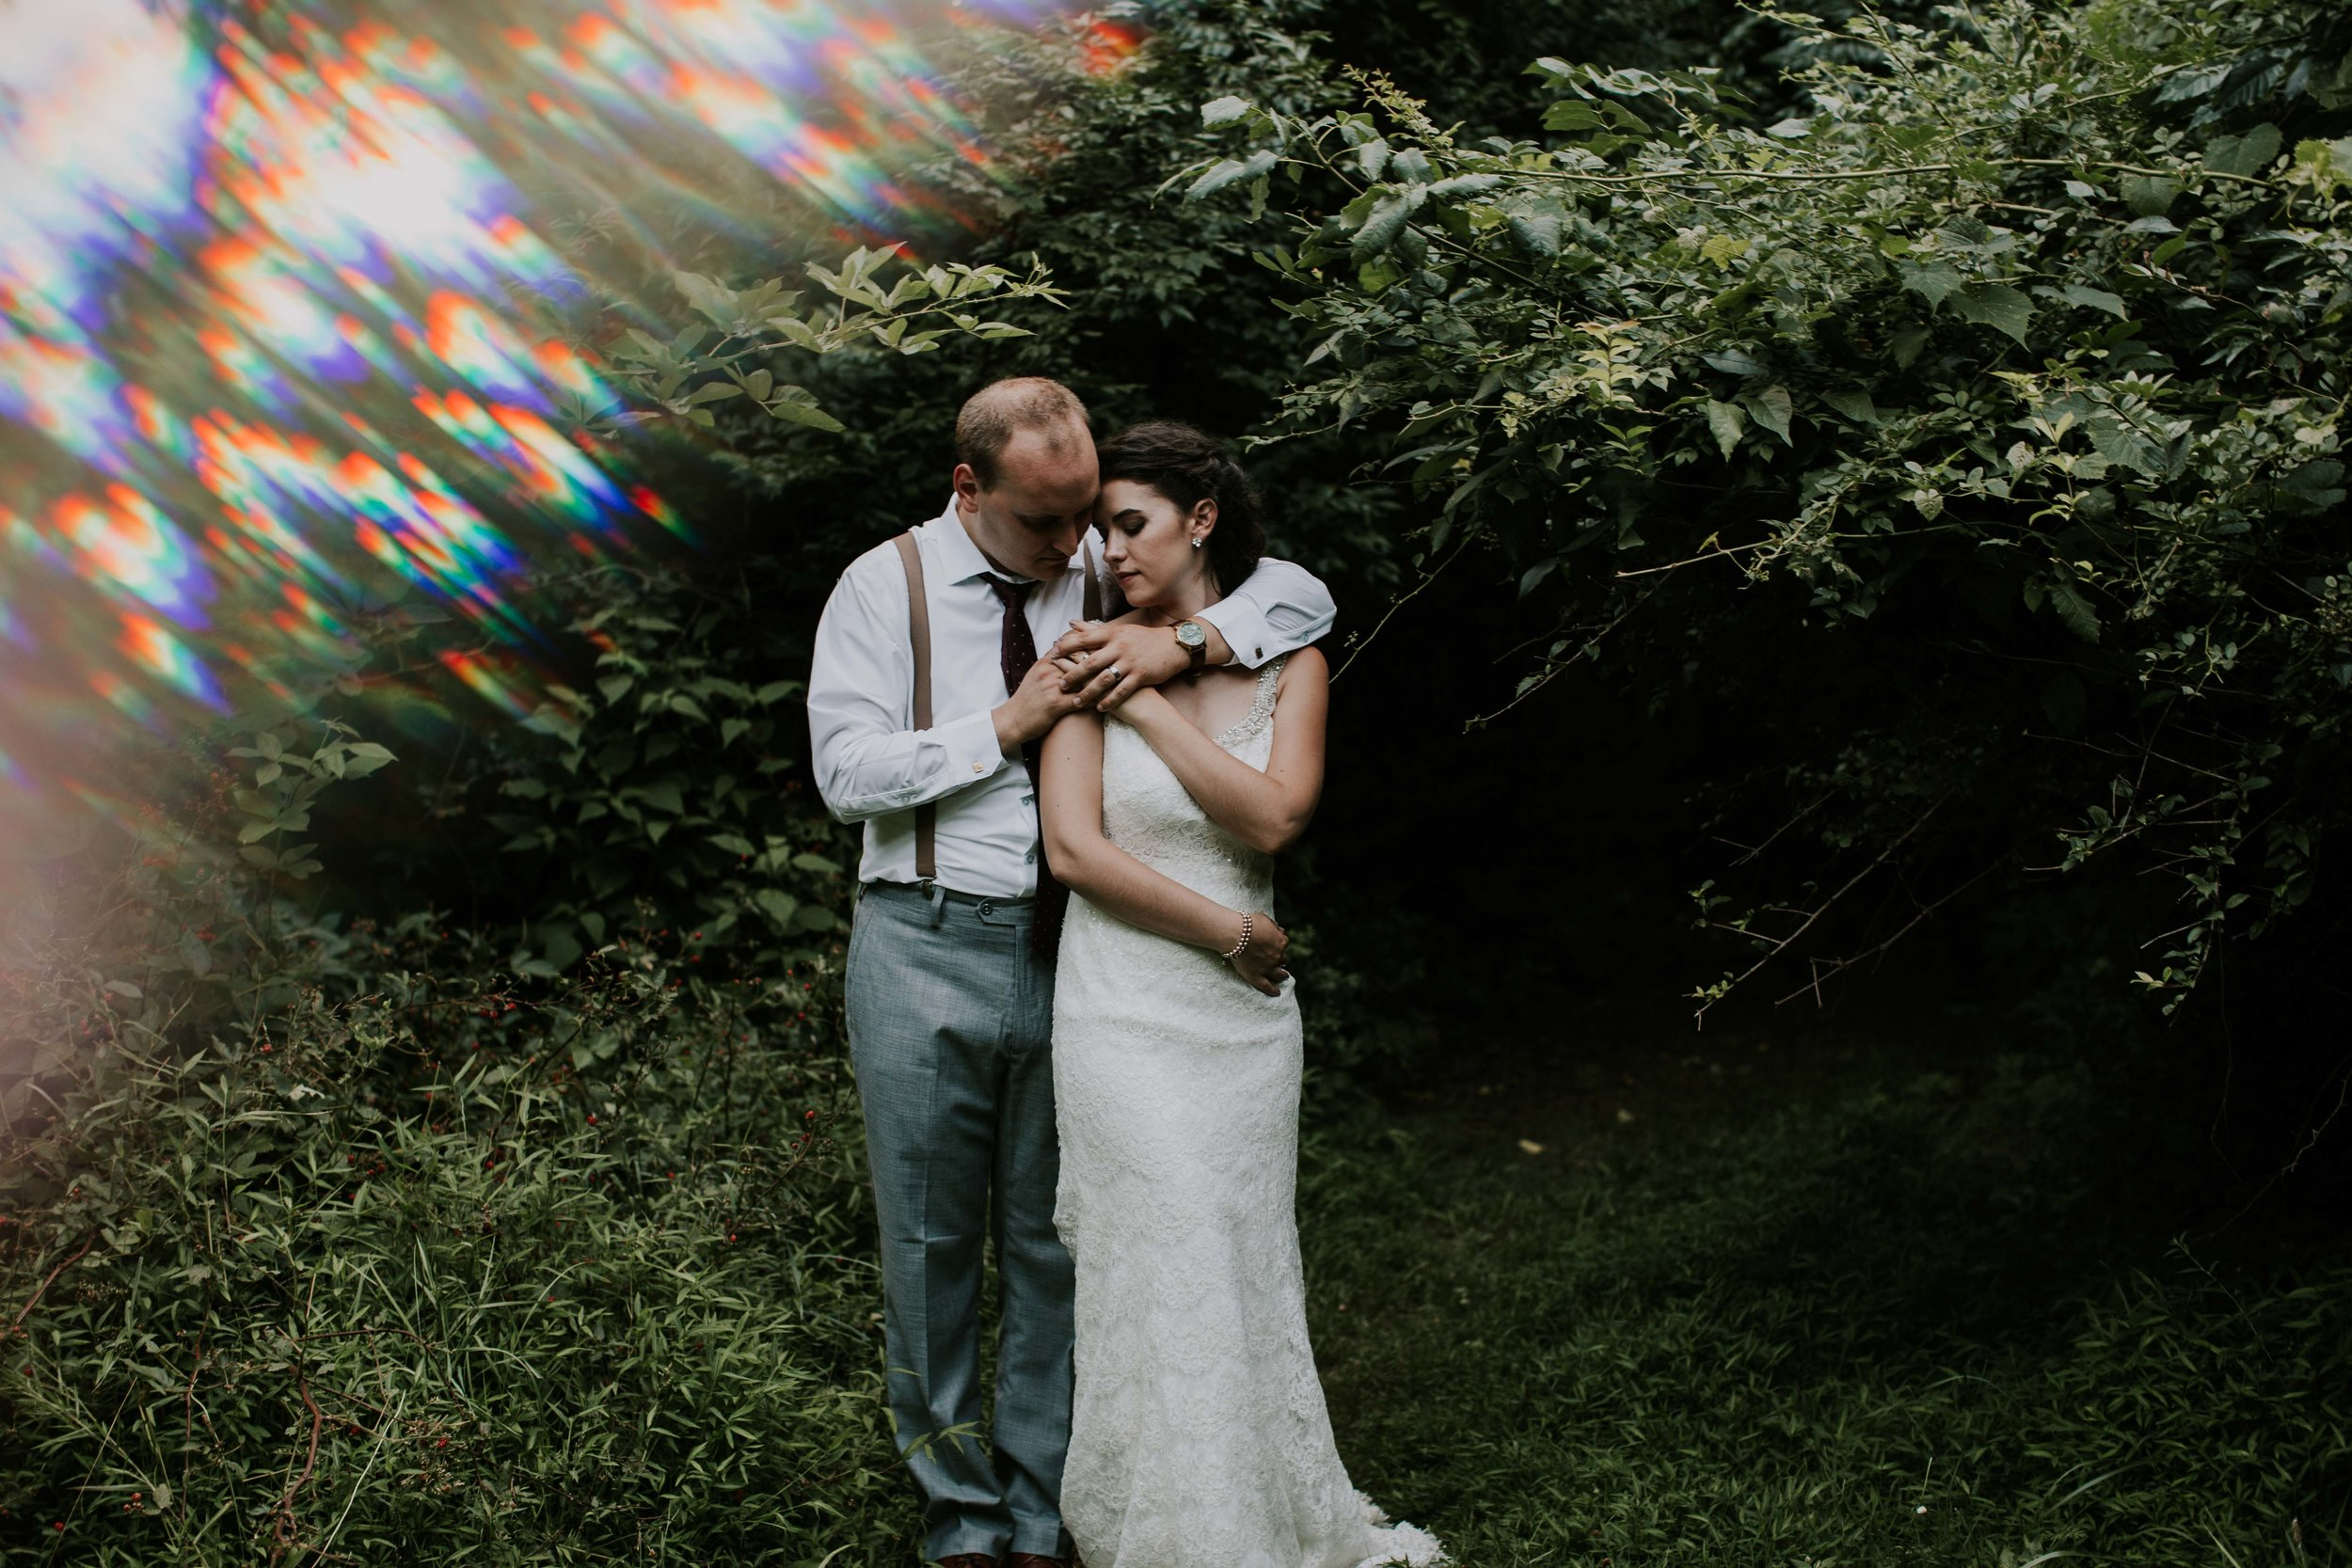 KELLY & ALEX - PLAYFUL SUMMER WEDDING